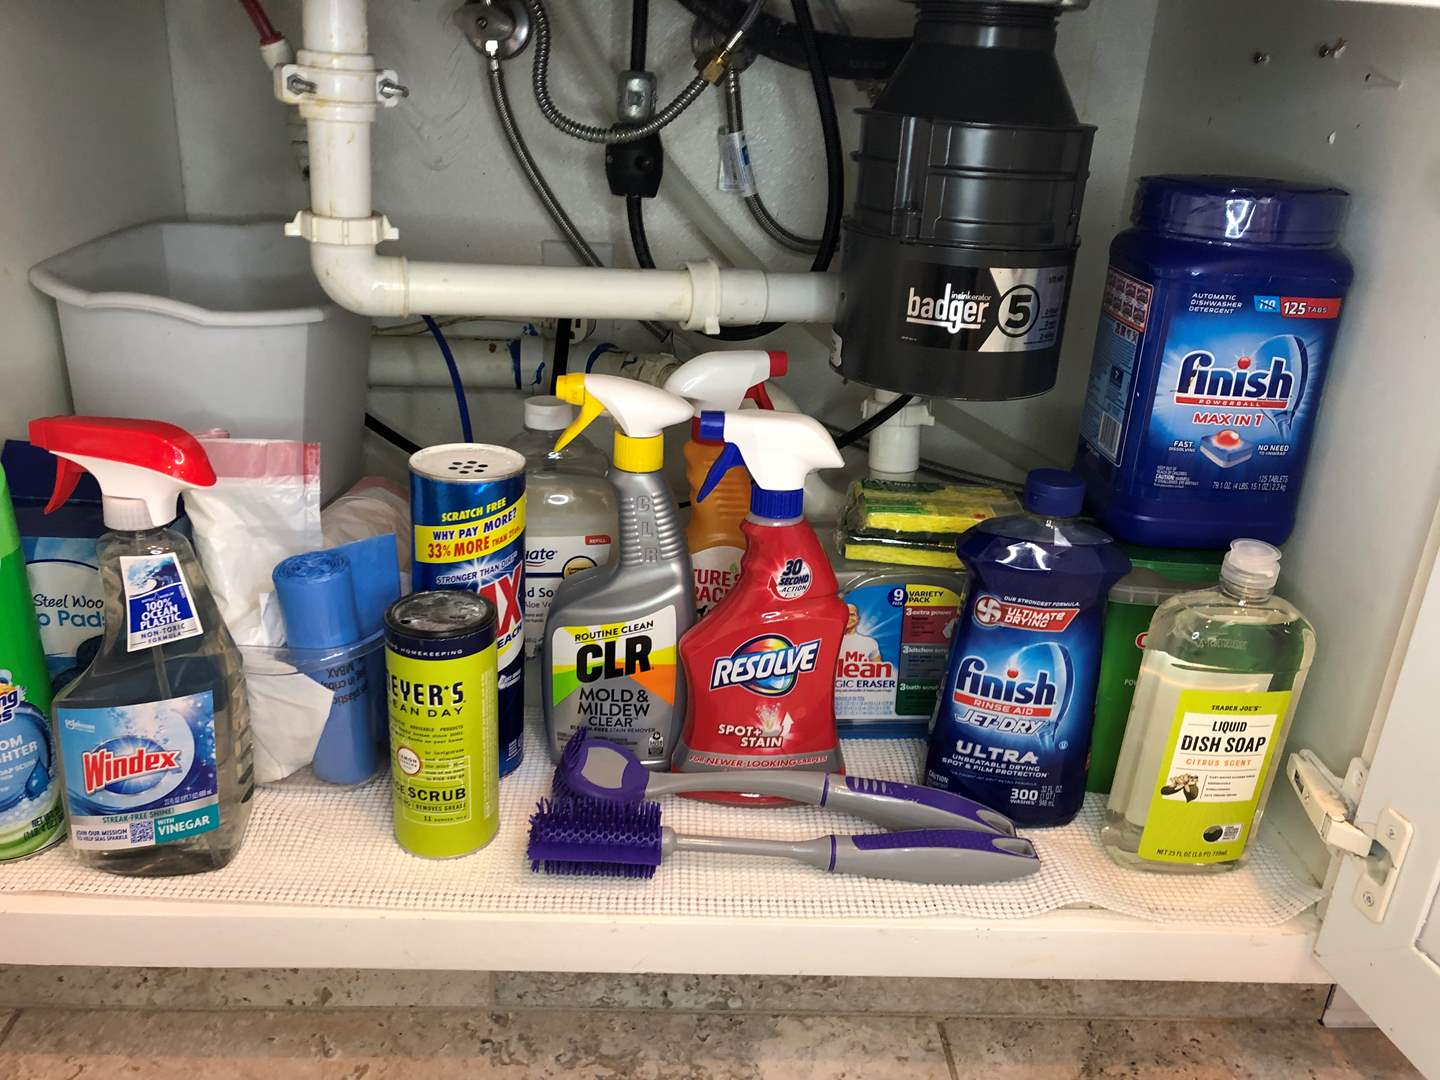 Lot # 40 - Cleaning Items, Dish Soap, Sponges, Dishwasher Pods and More  (main image)